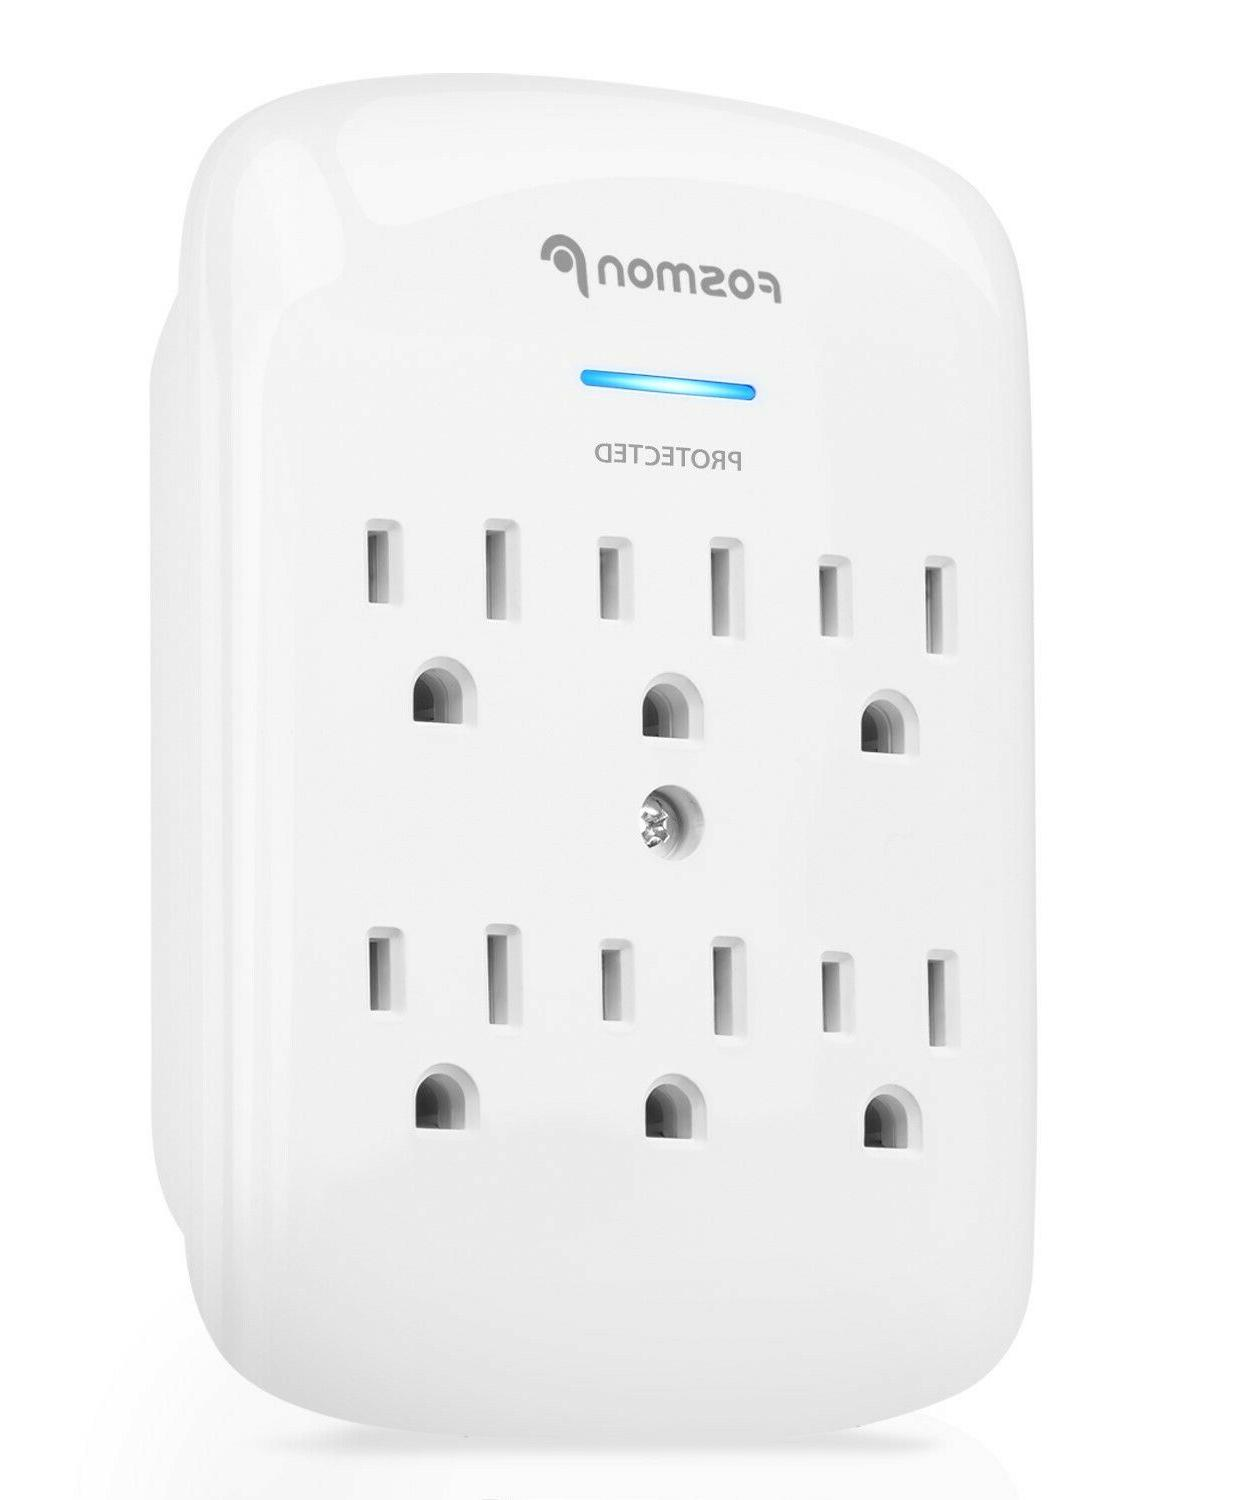 Fosmon 6 Outlet Surge Protector Multi Plug Wall Adapter Tap